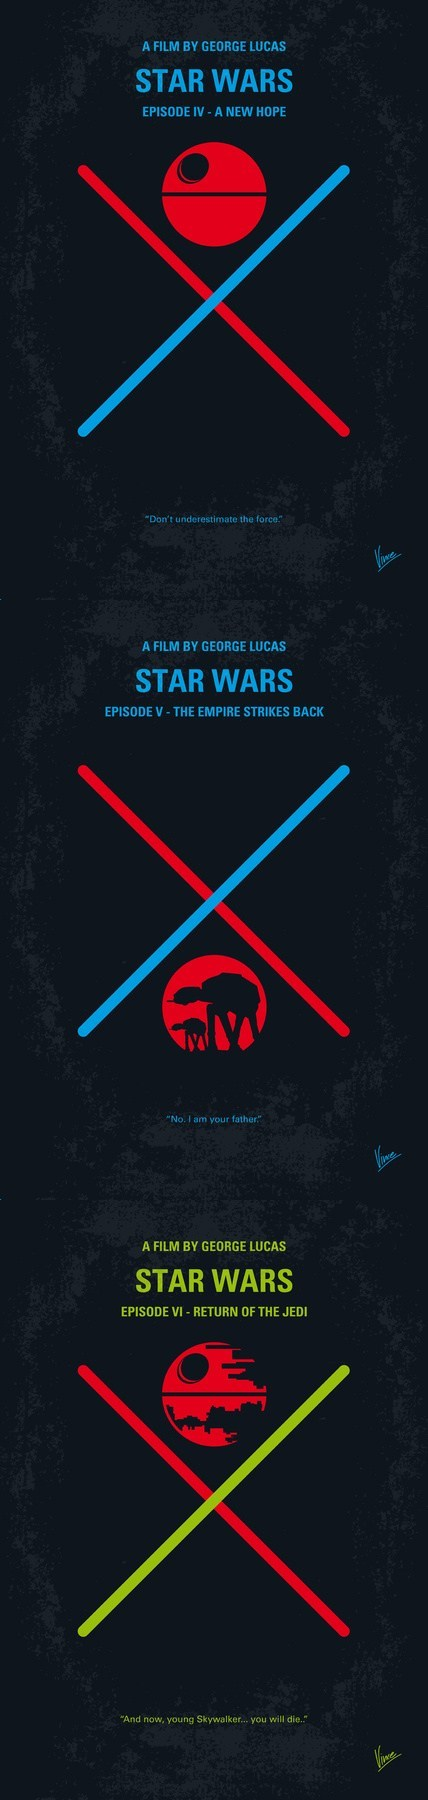 Set Phasers to LOL: Star Wars Trilogy Minimalist Posters